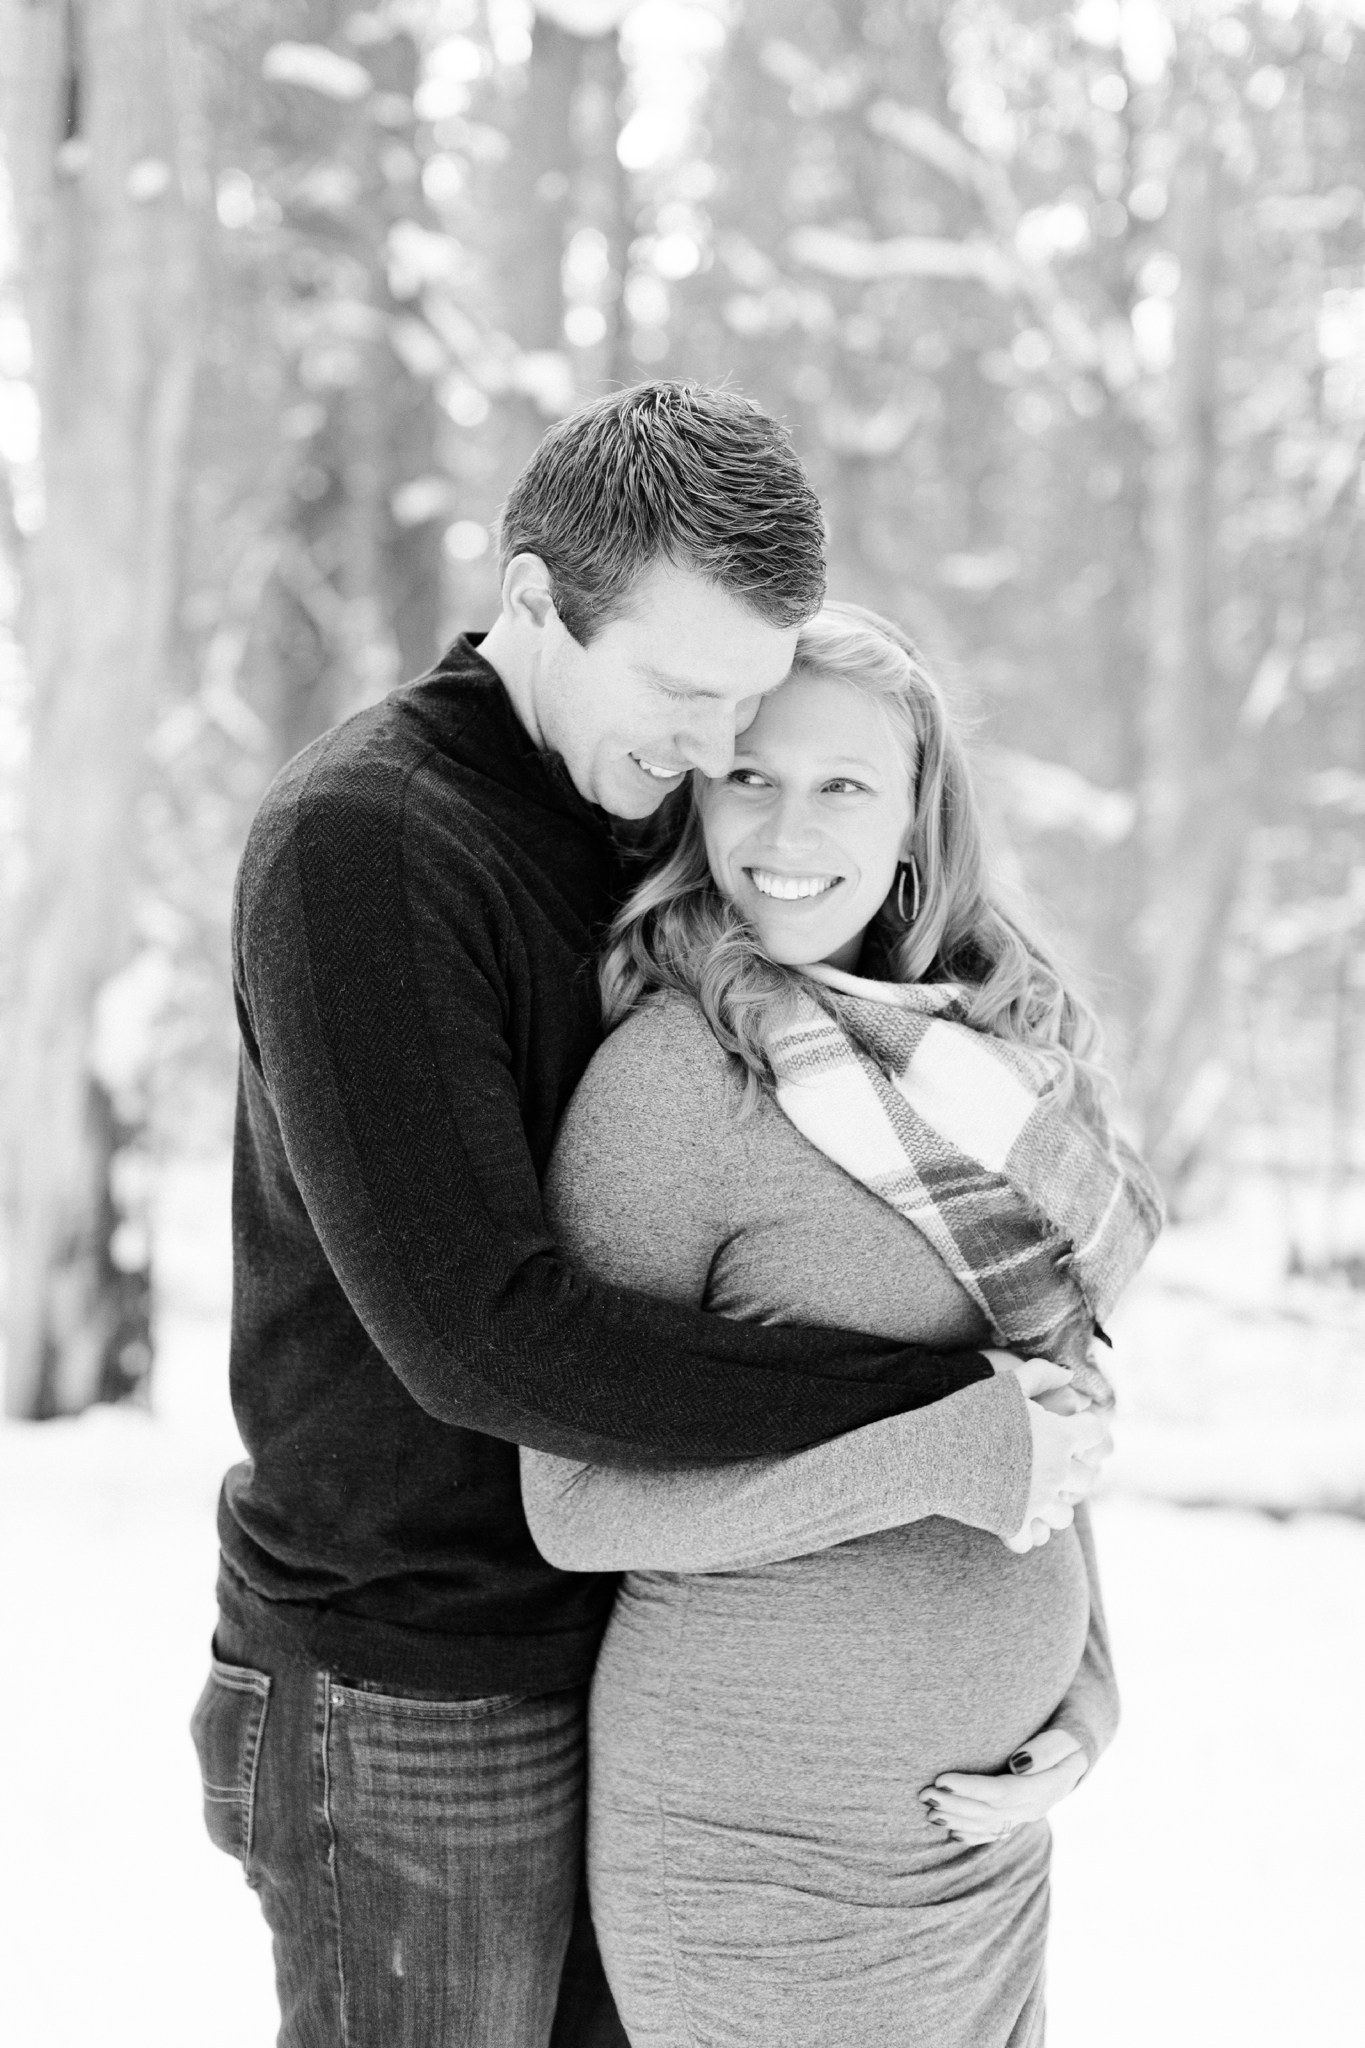 North Shore, Massachusetts maternity session photographed by Deborah Zoe Photography.